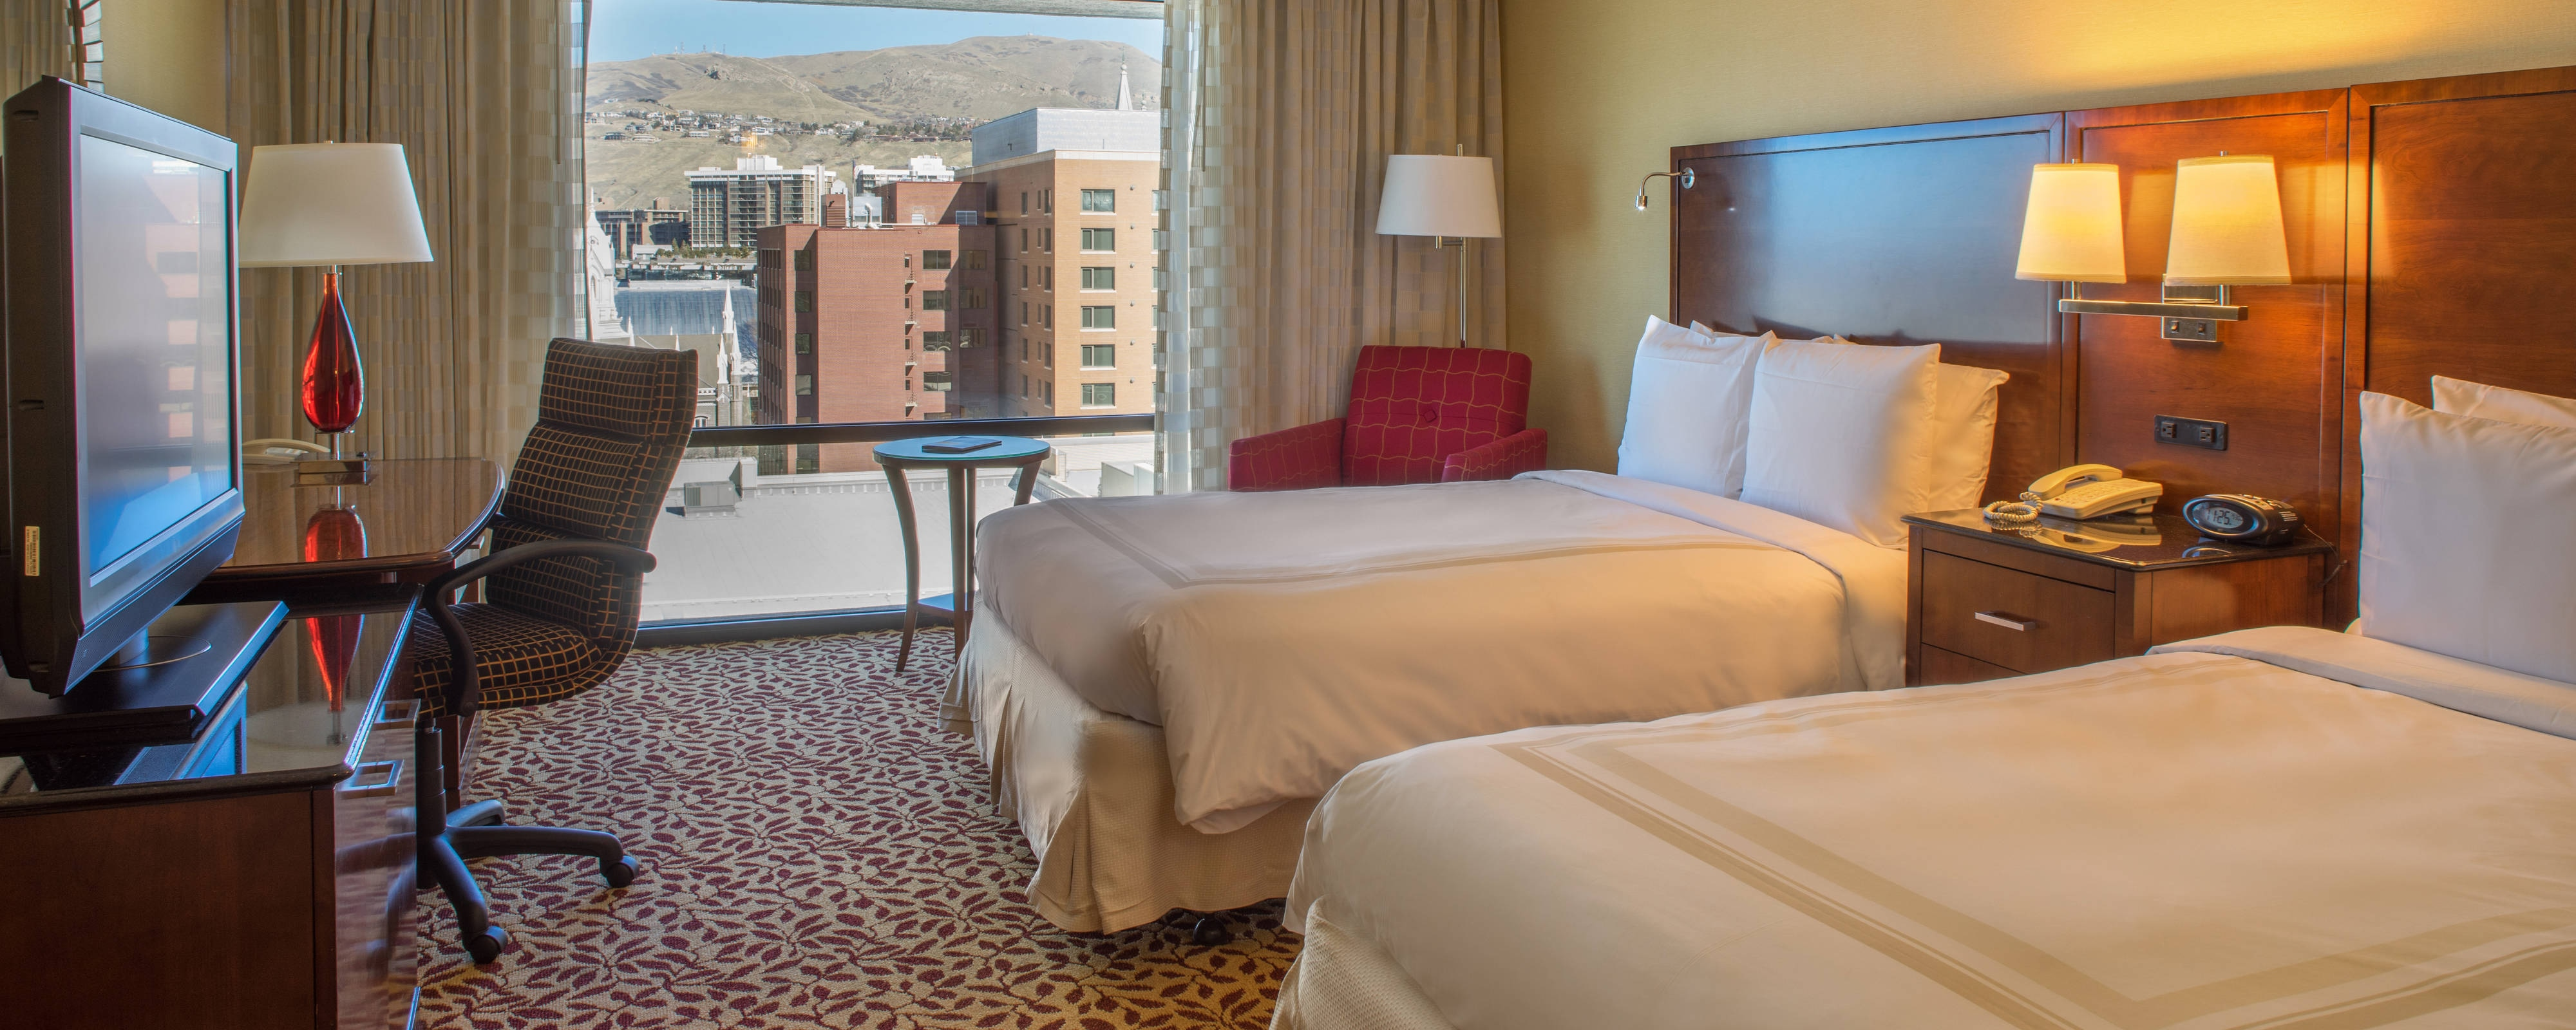 Camera con due letti queen dell'hotel Marriott Salt Lake